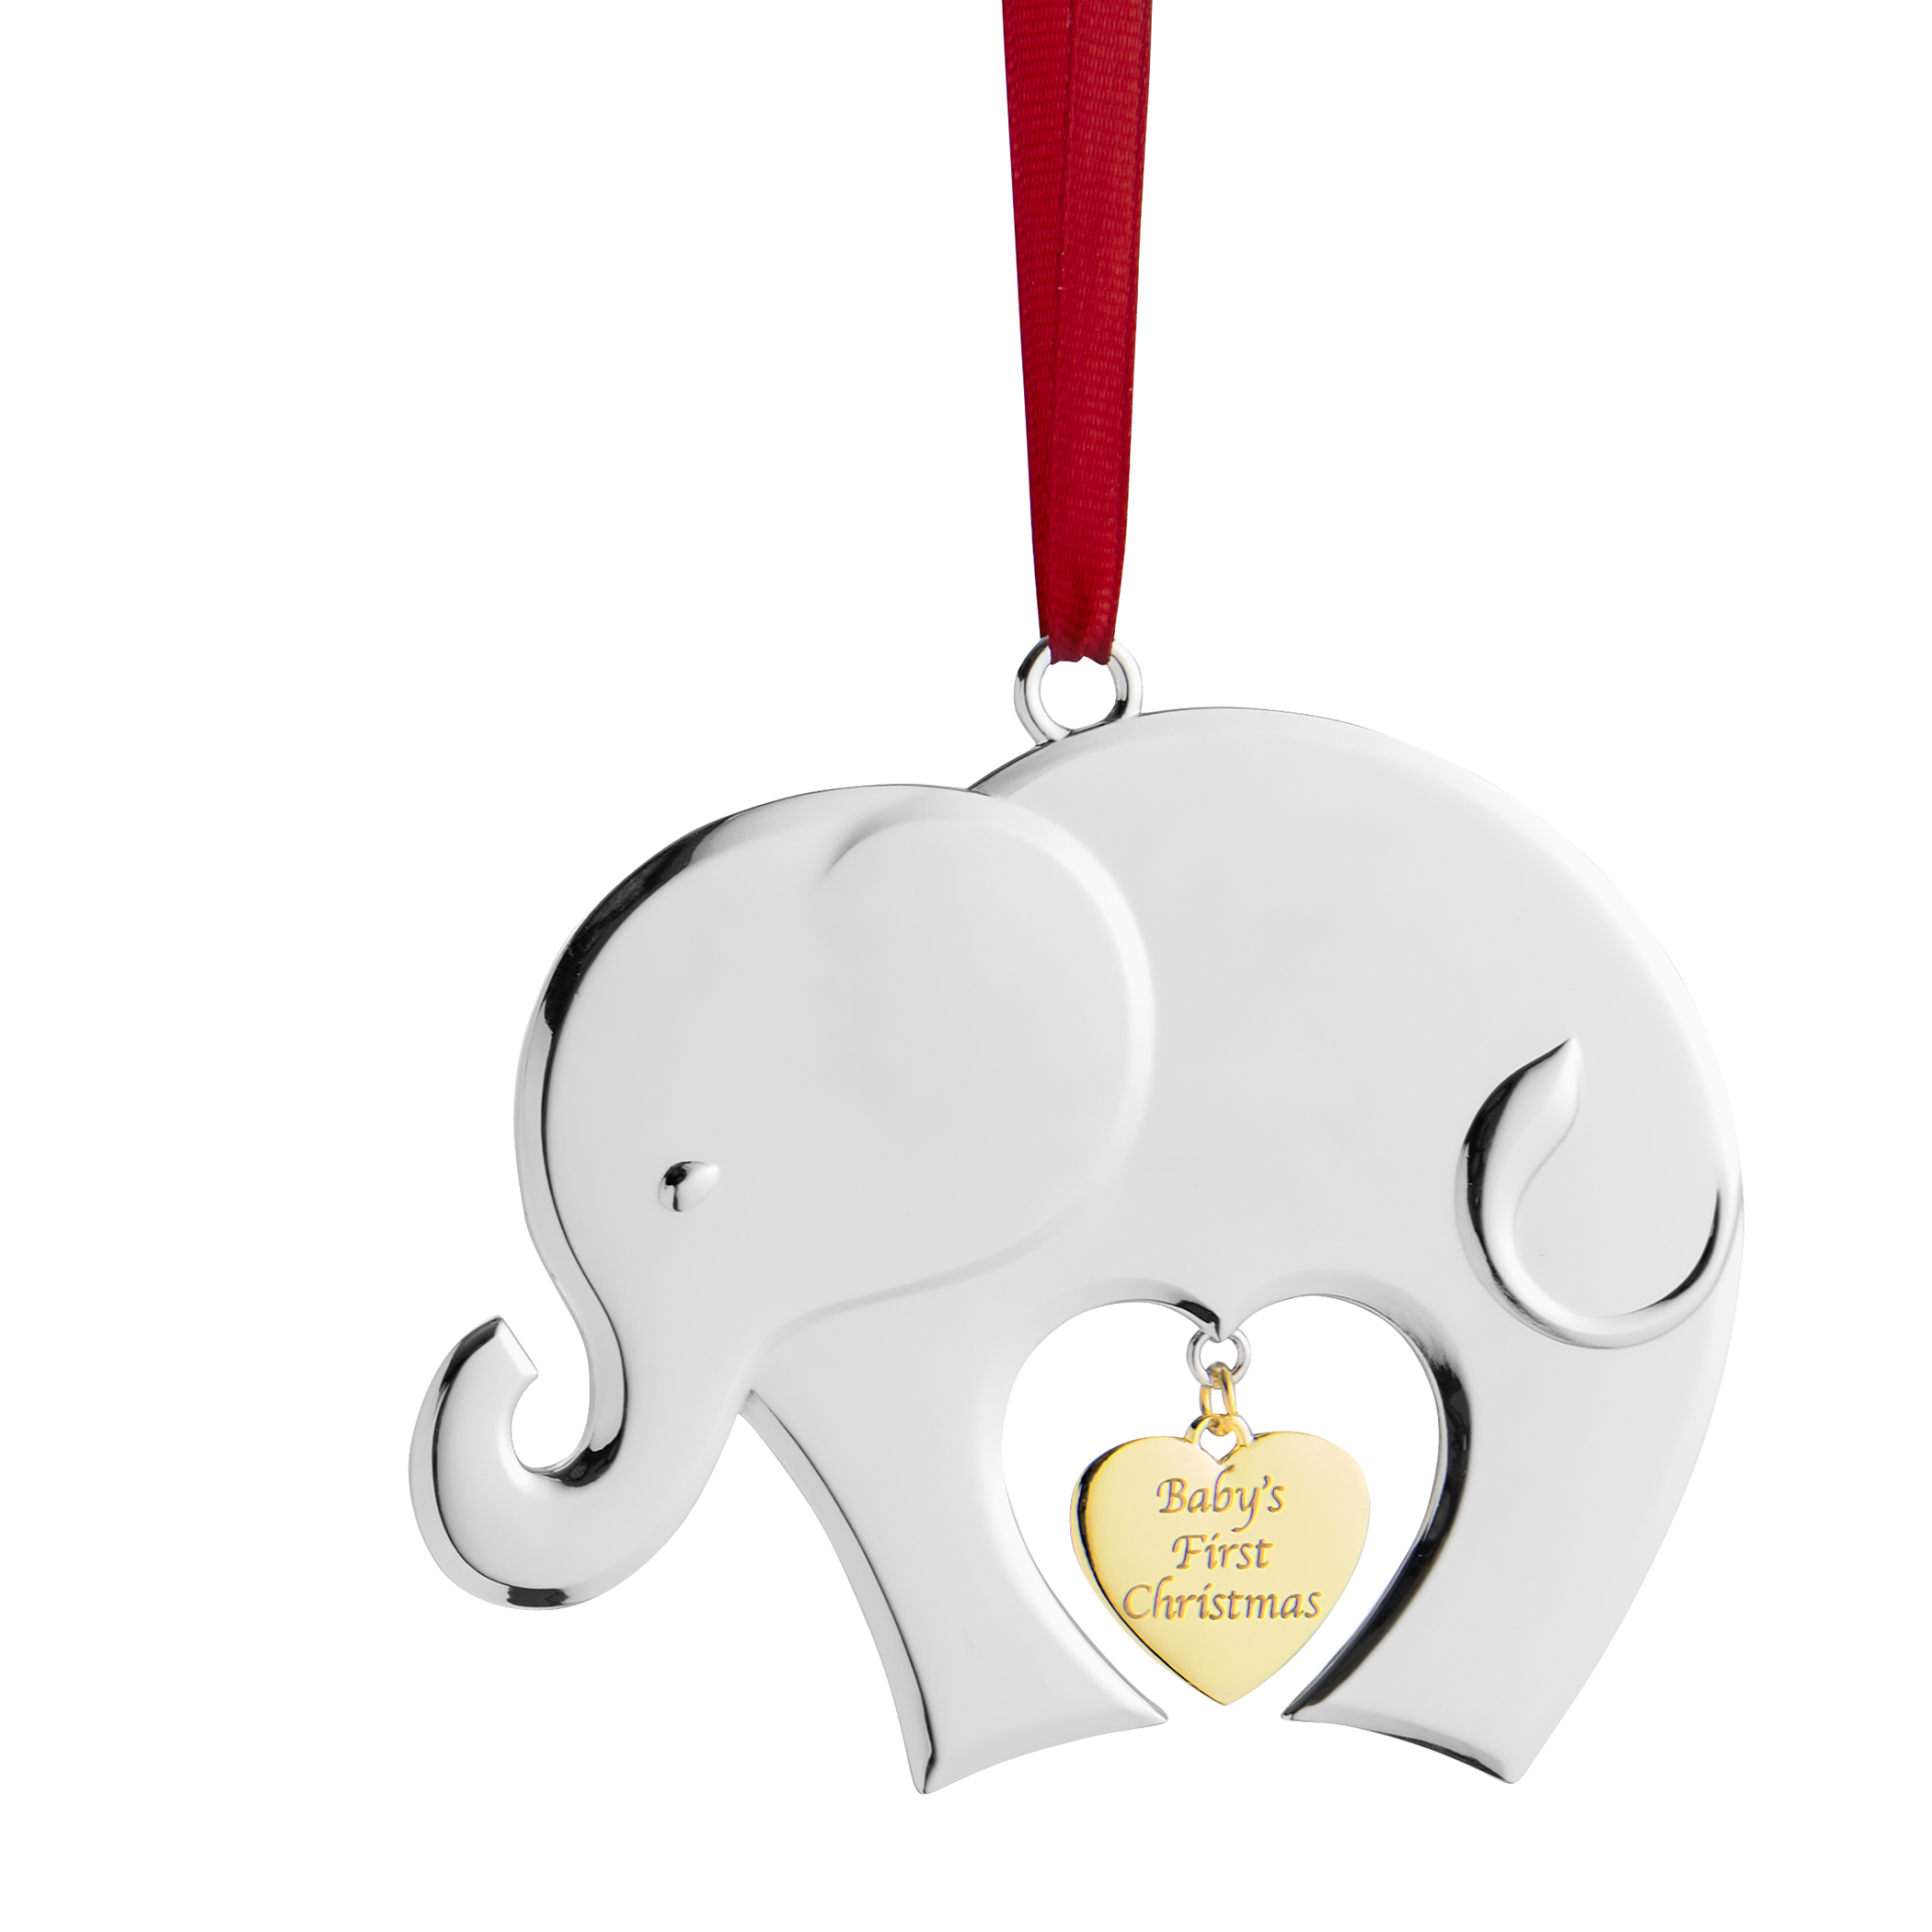 babys first christmas ornament 2018babys first christmas ornament 2018